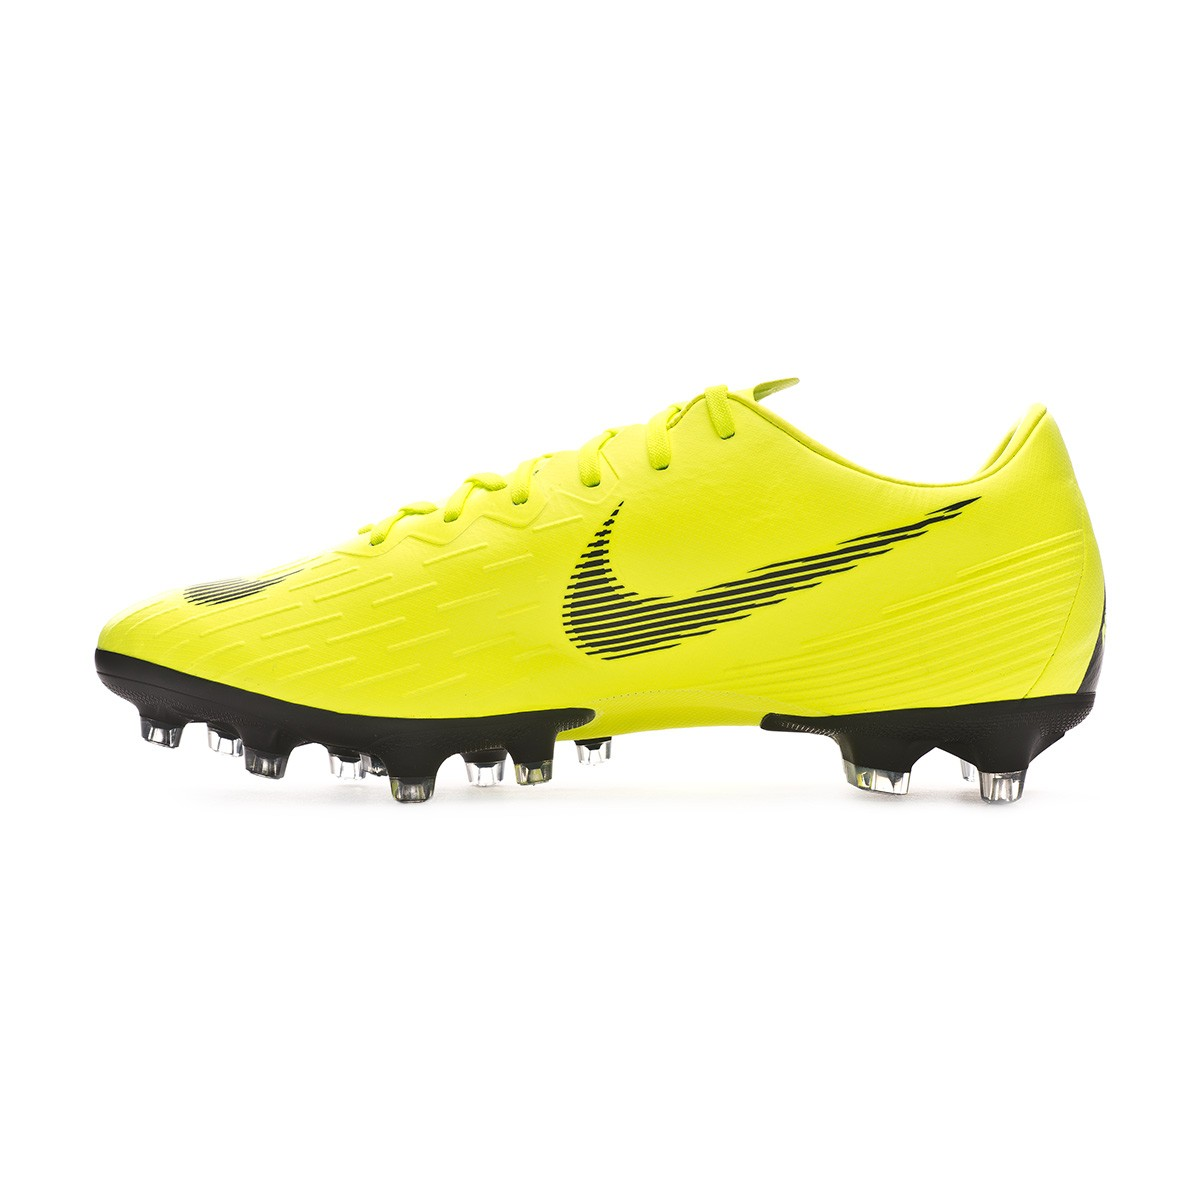 68b386c3ca680 Football Boots Nike Mercurial Vapor XII Pro AG-Pro Volt-Black - Football  store Fútbol Emotion